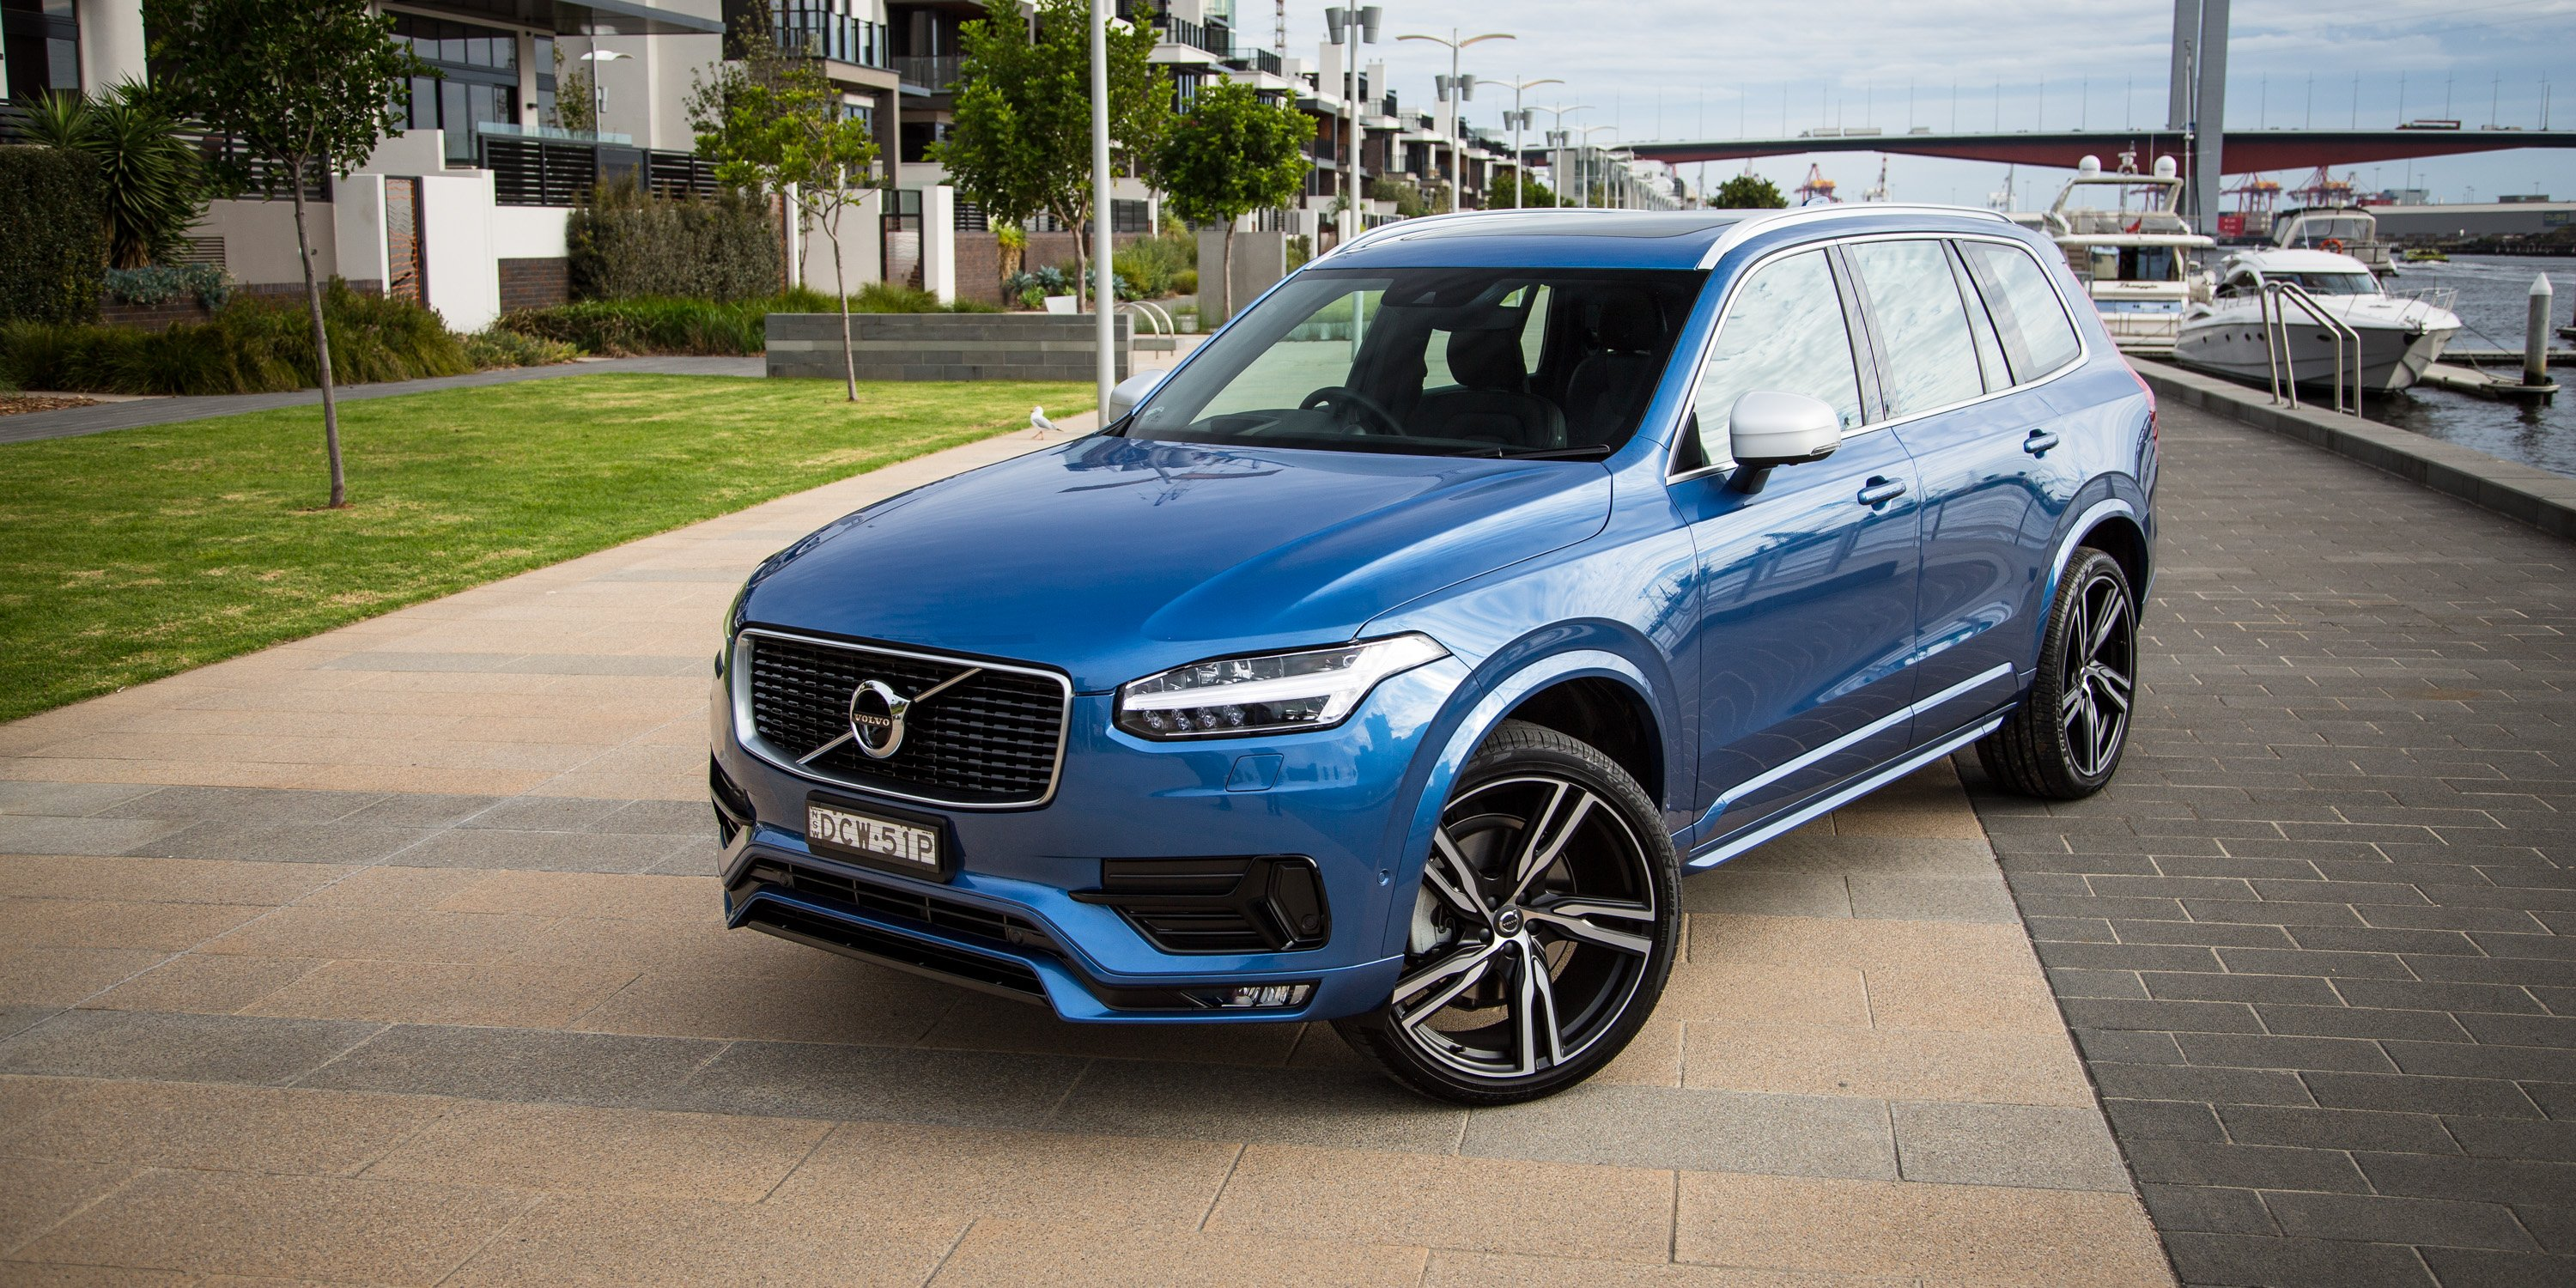 2016 Volvo Xc90 T6 R Design Long Term Report One Photos